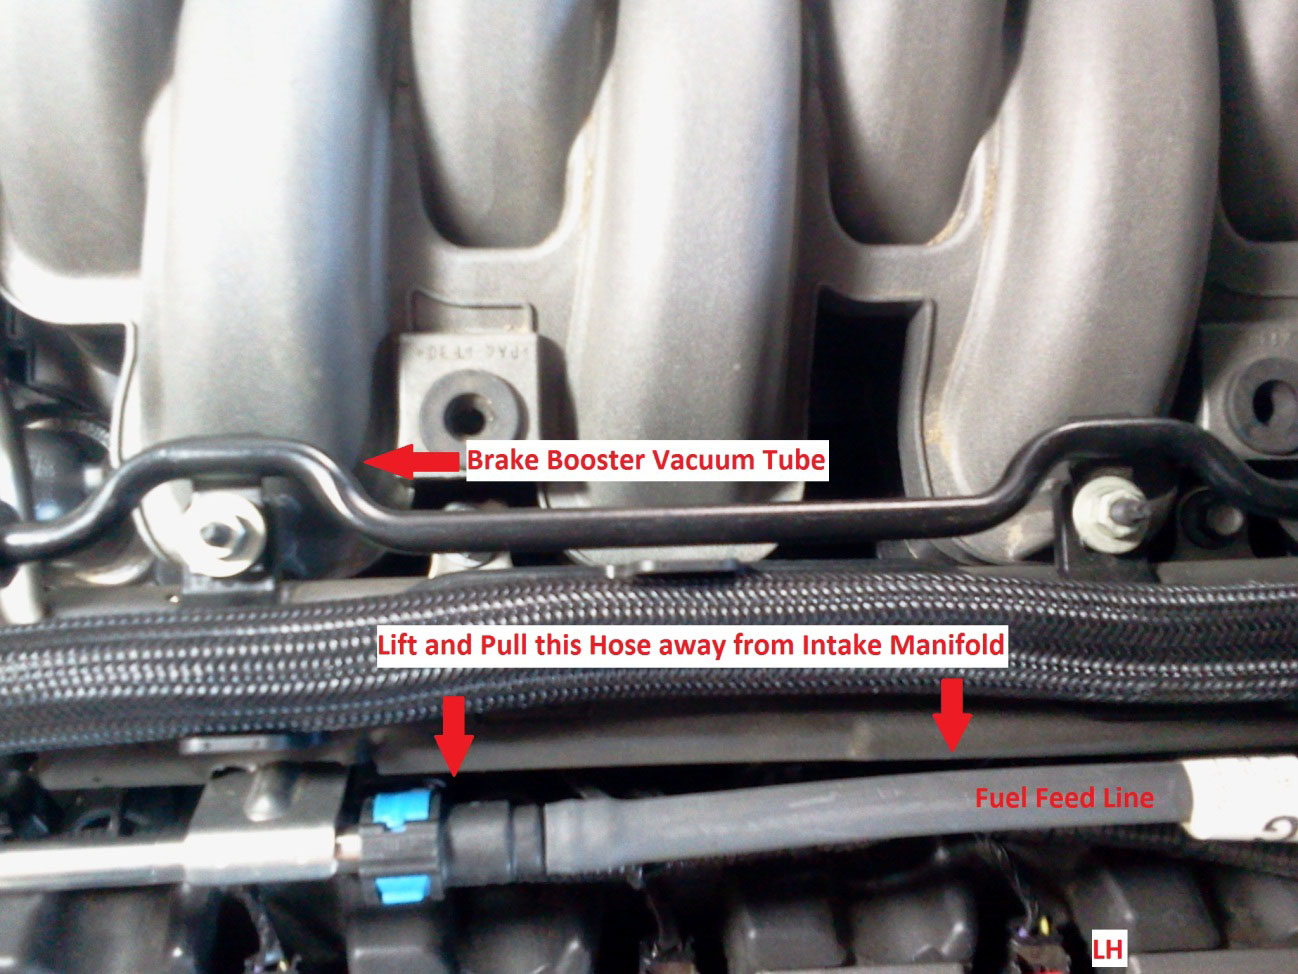 How To Install A Boss 302 Intake Manifold On Your 2011 2013 Mustang 2000 Ford Purge Valve Location Underneath You Will See 2 Nuts Holding Plastic Hose Brackets Use 10mm Socket Remove Them And Set Aside The